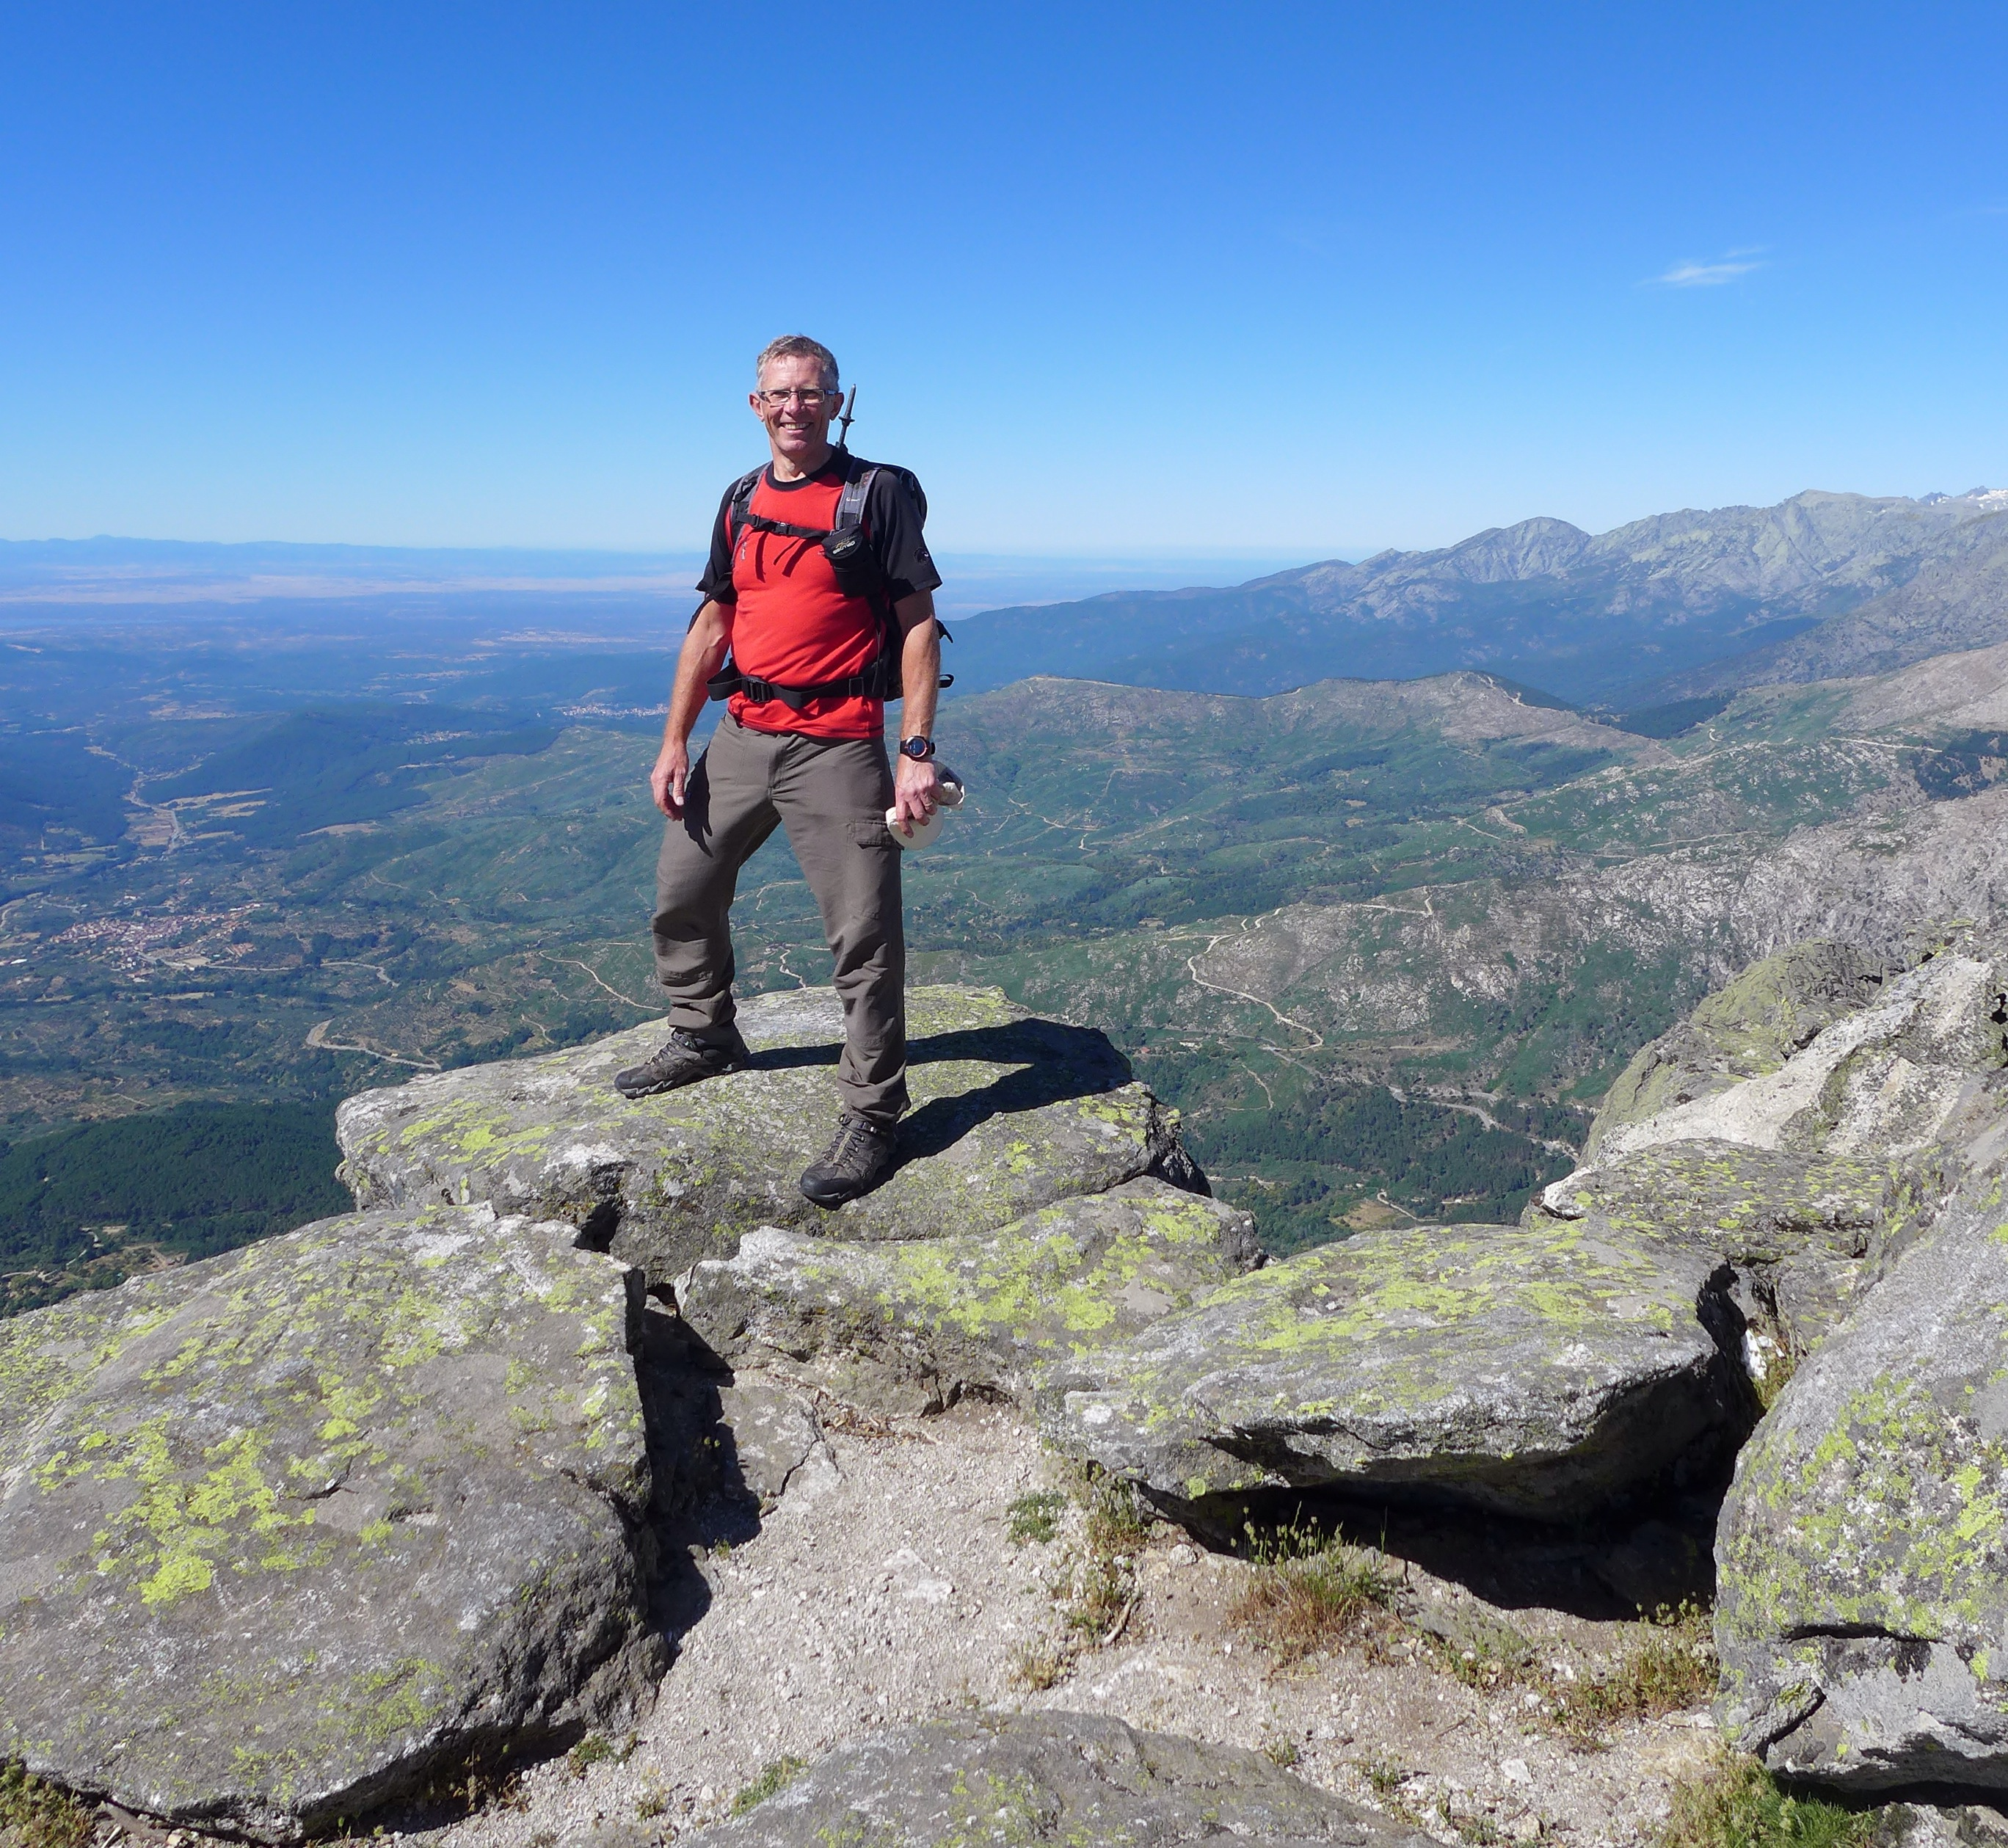 Headwater - Self-guided Walking In The Sierra De Gredos